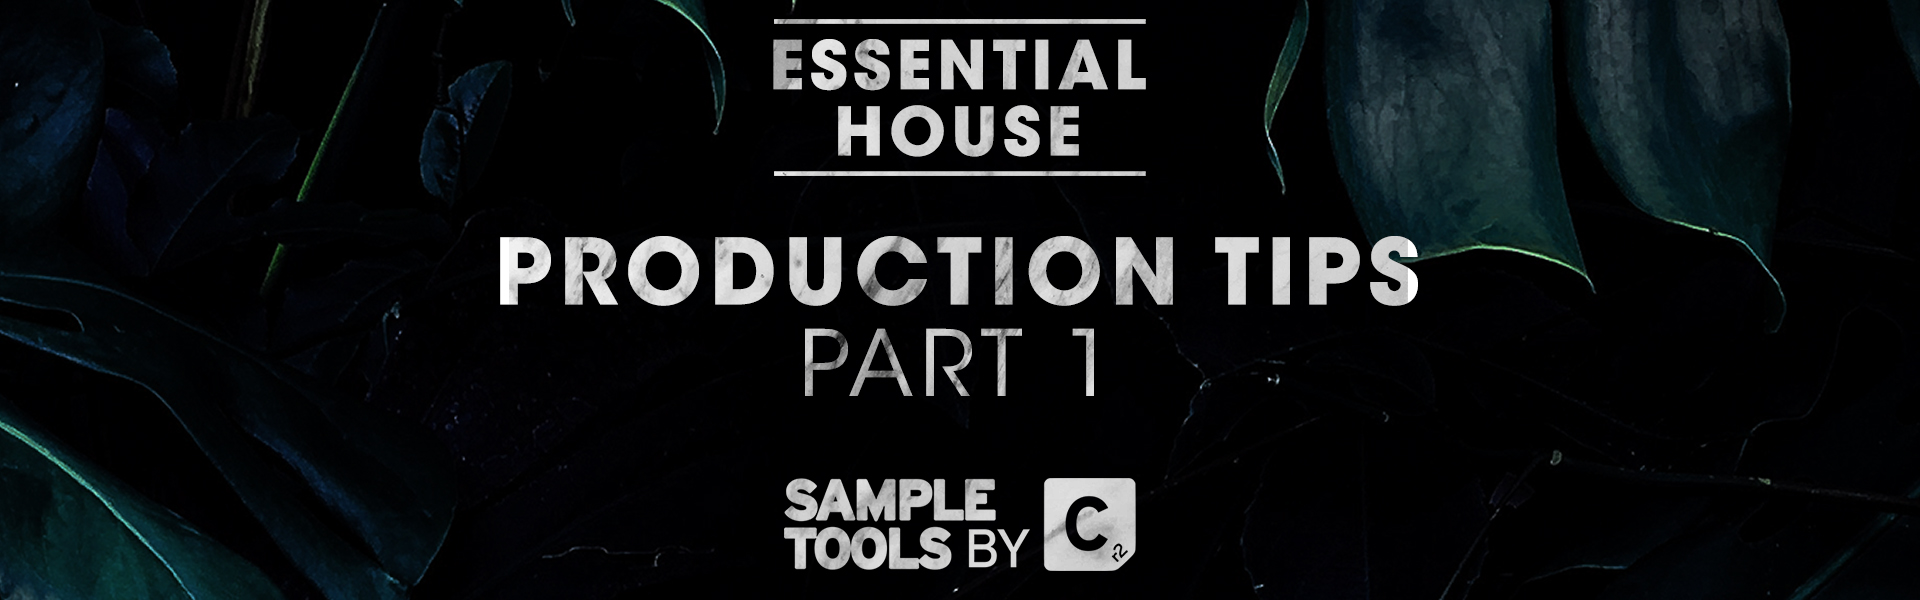 ESSENTIAL HOUSE: Production Tips Pt. I